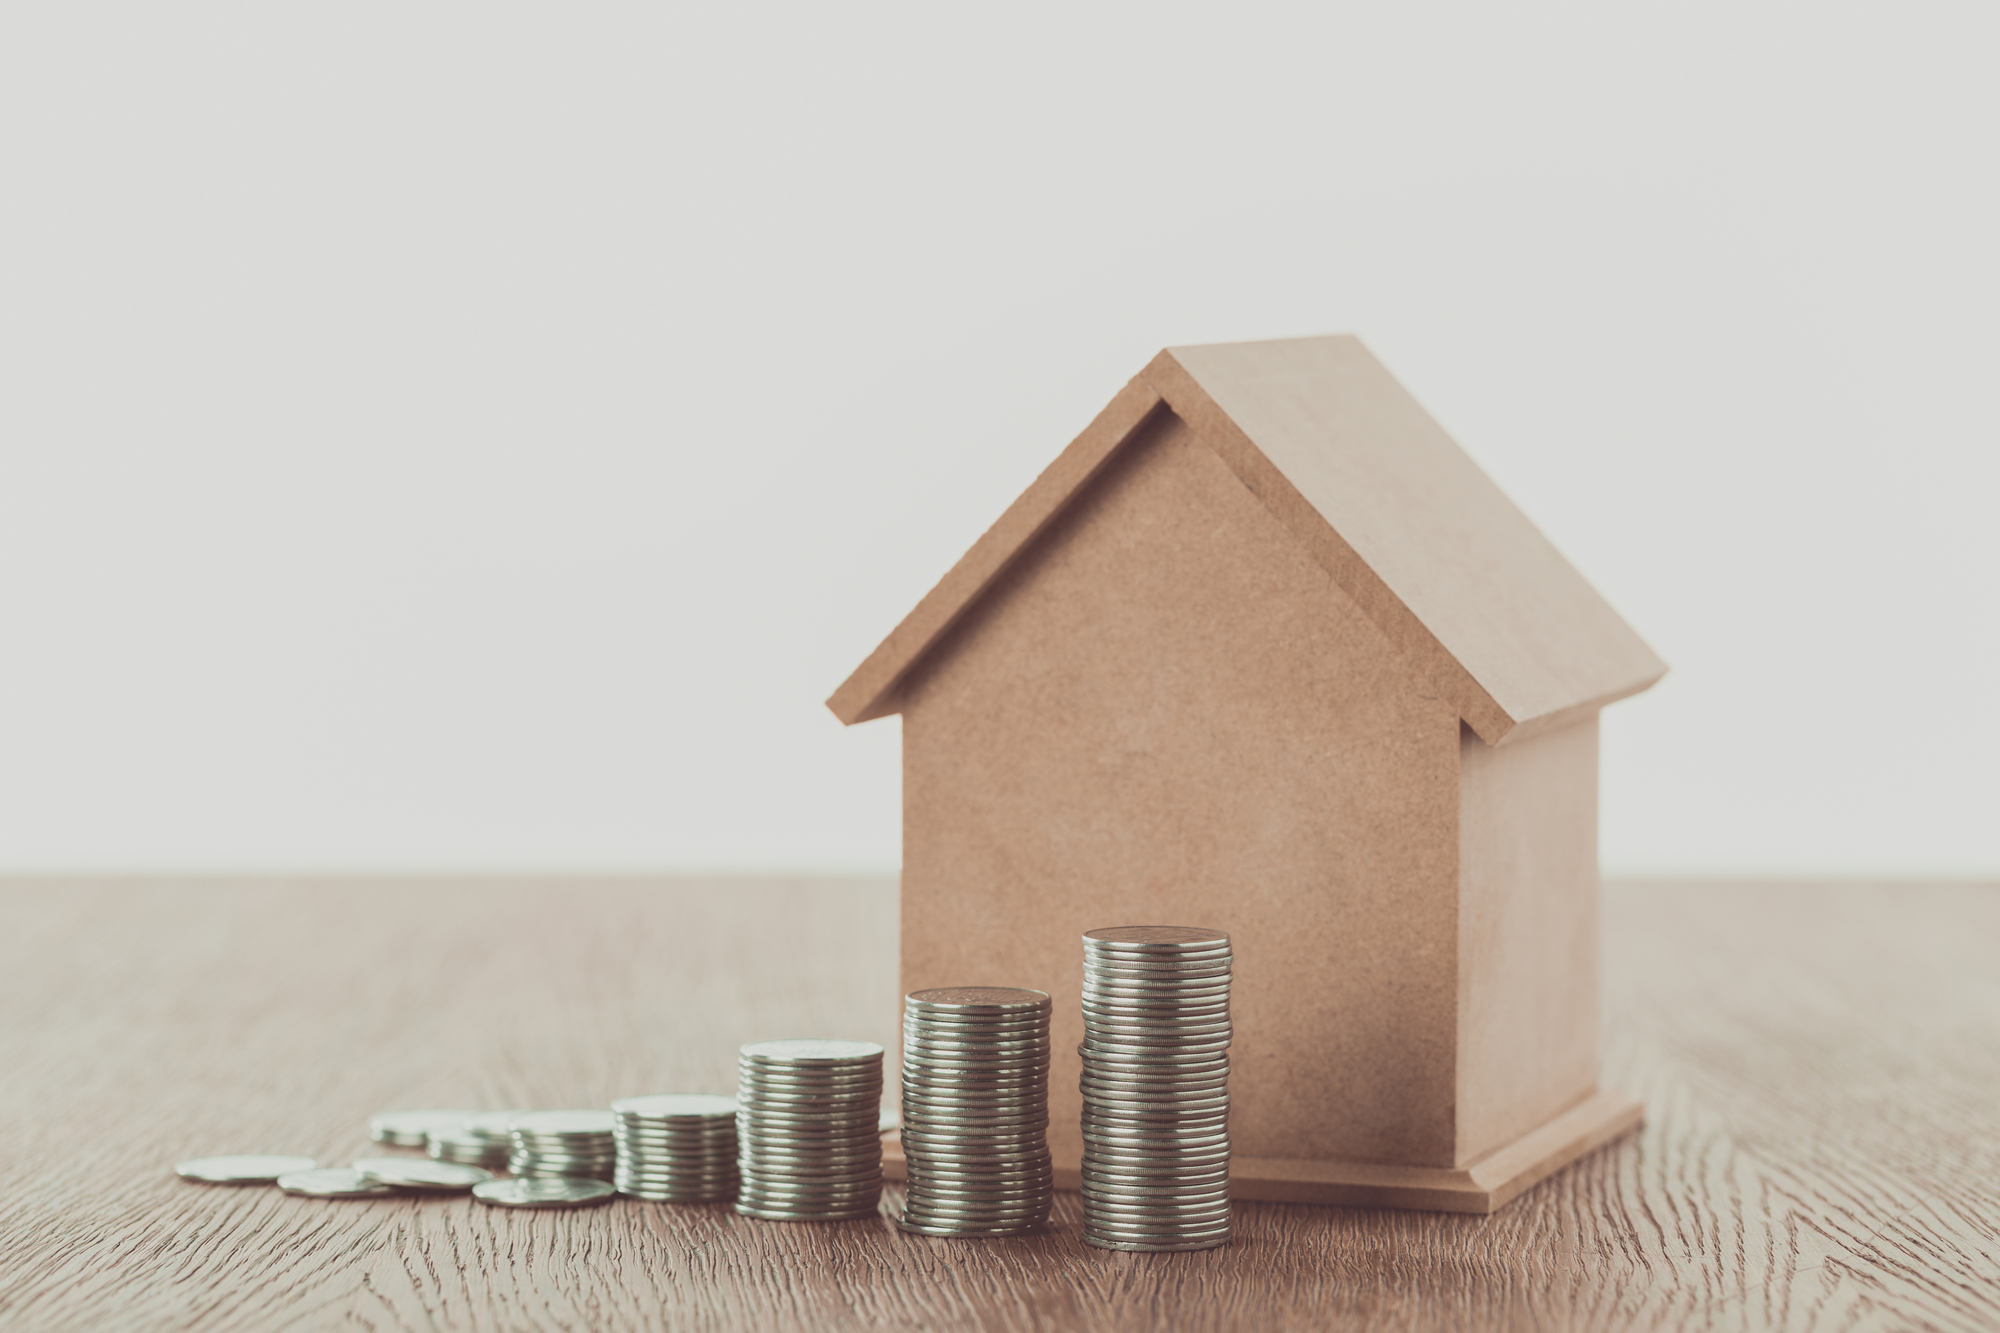 Stacks of coins and small house on wooden table, saving concept